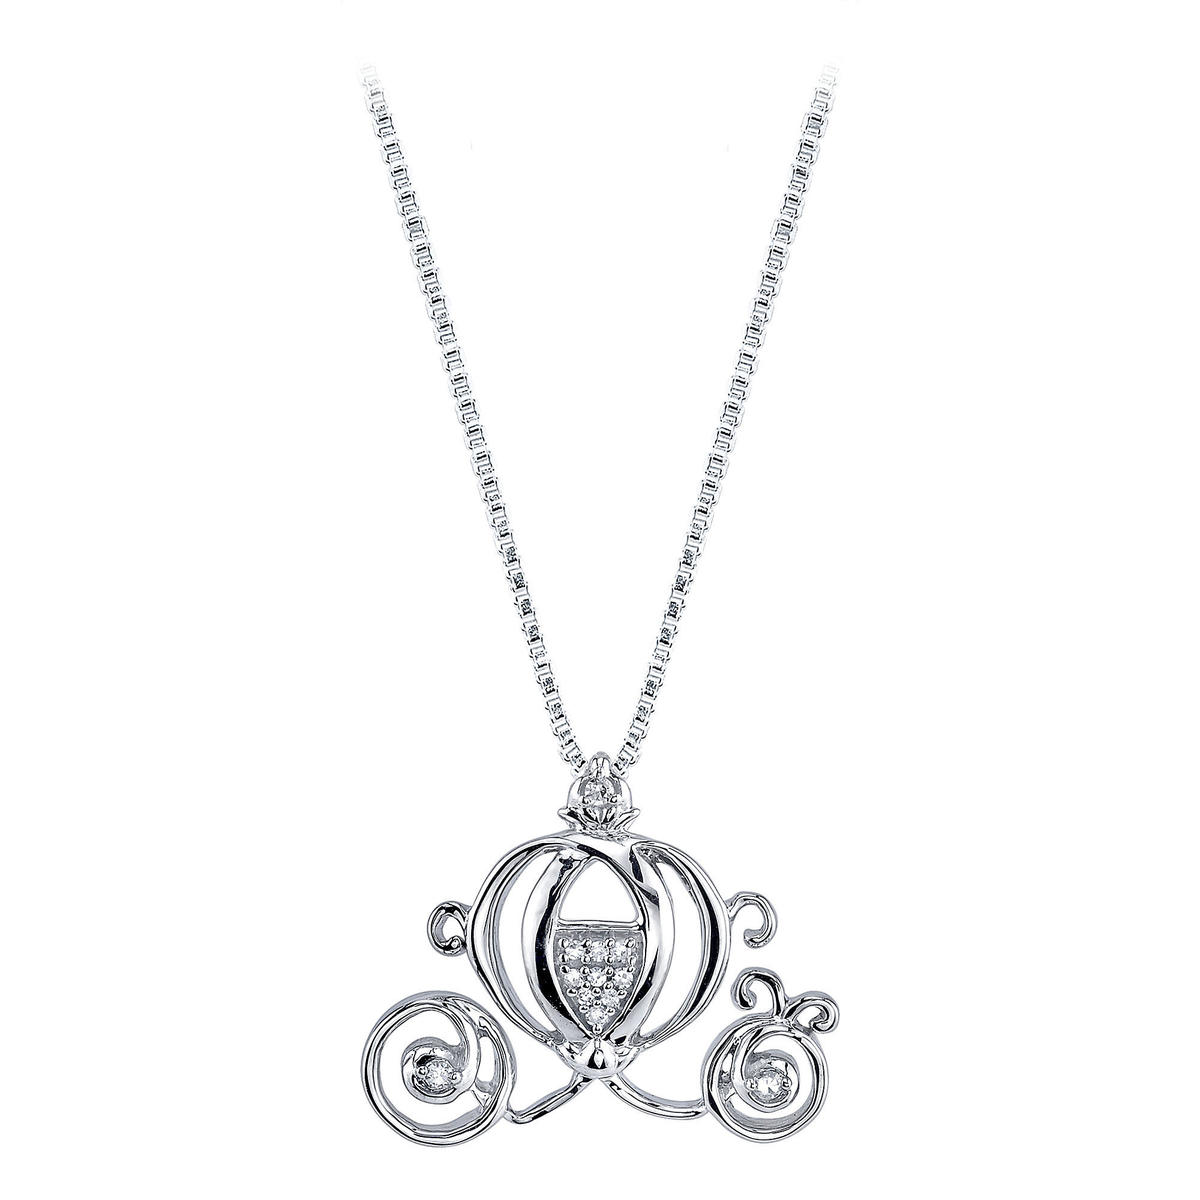 Disney Cinderella coach necklace